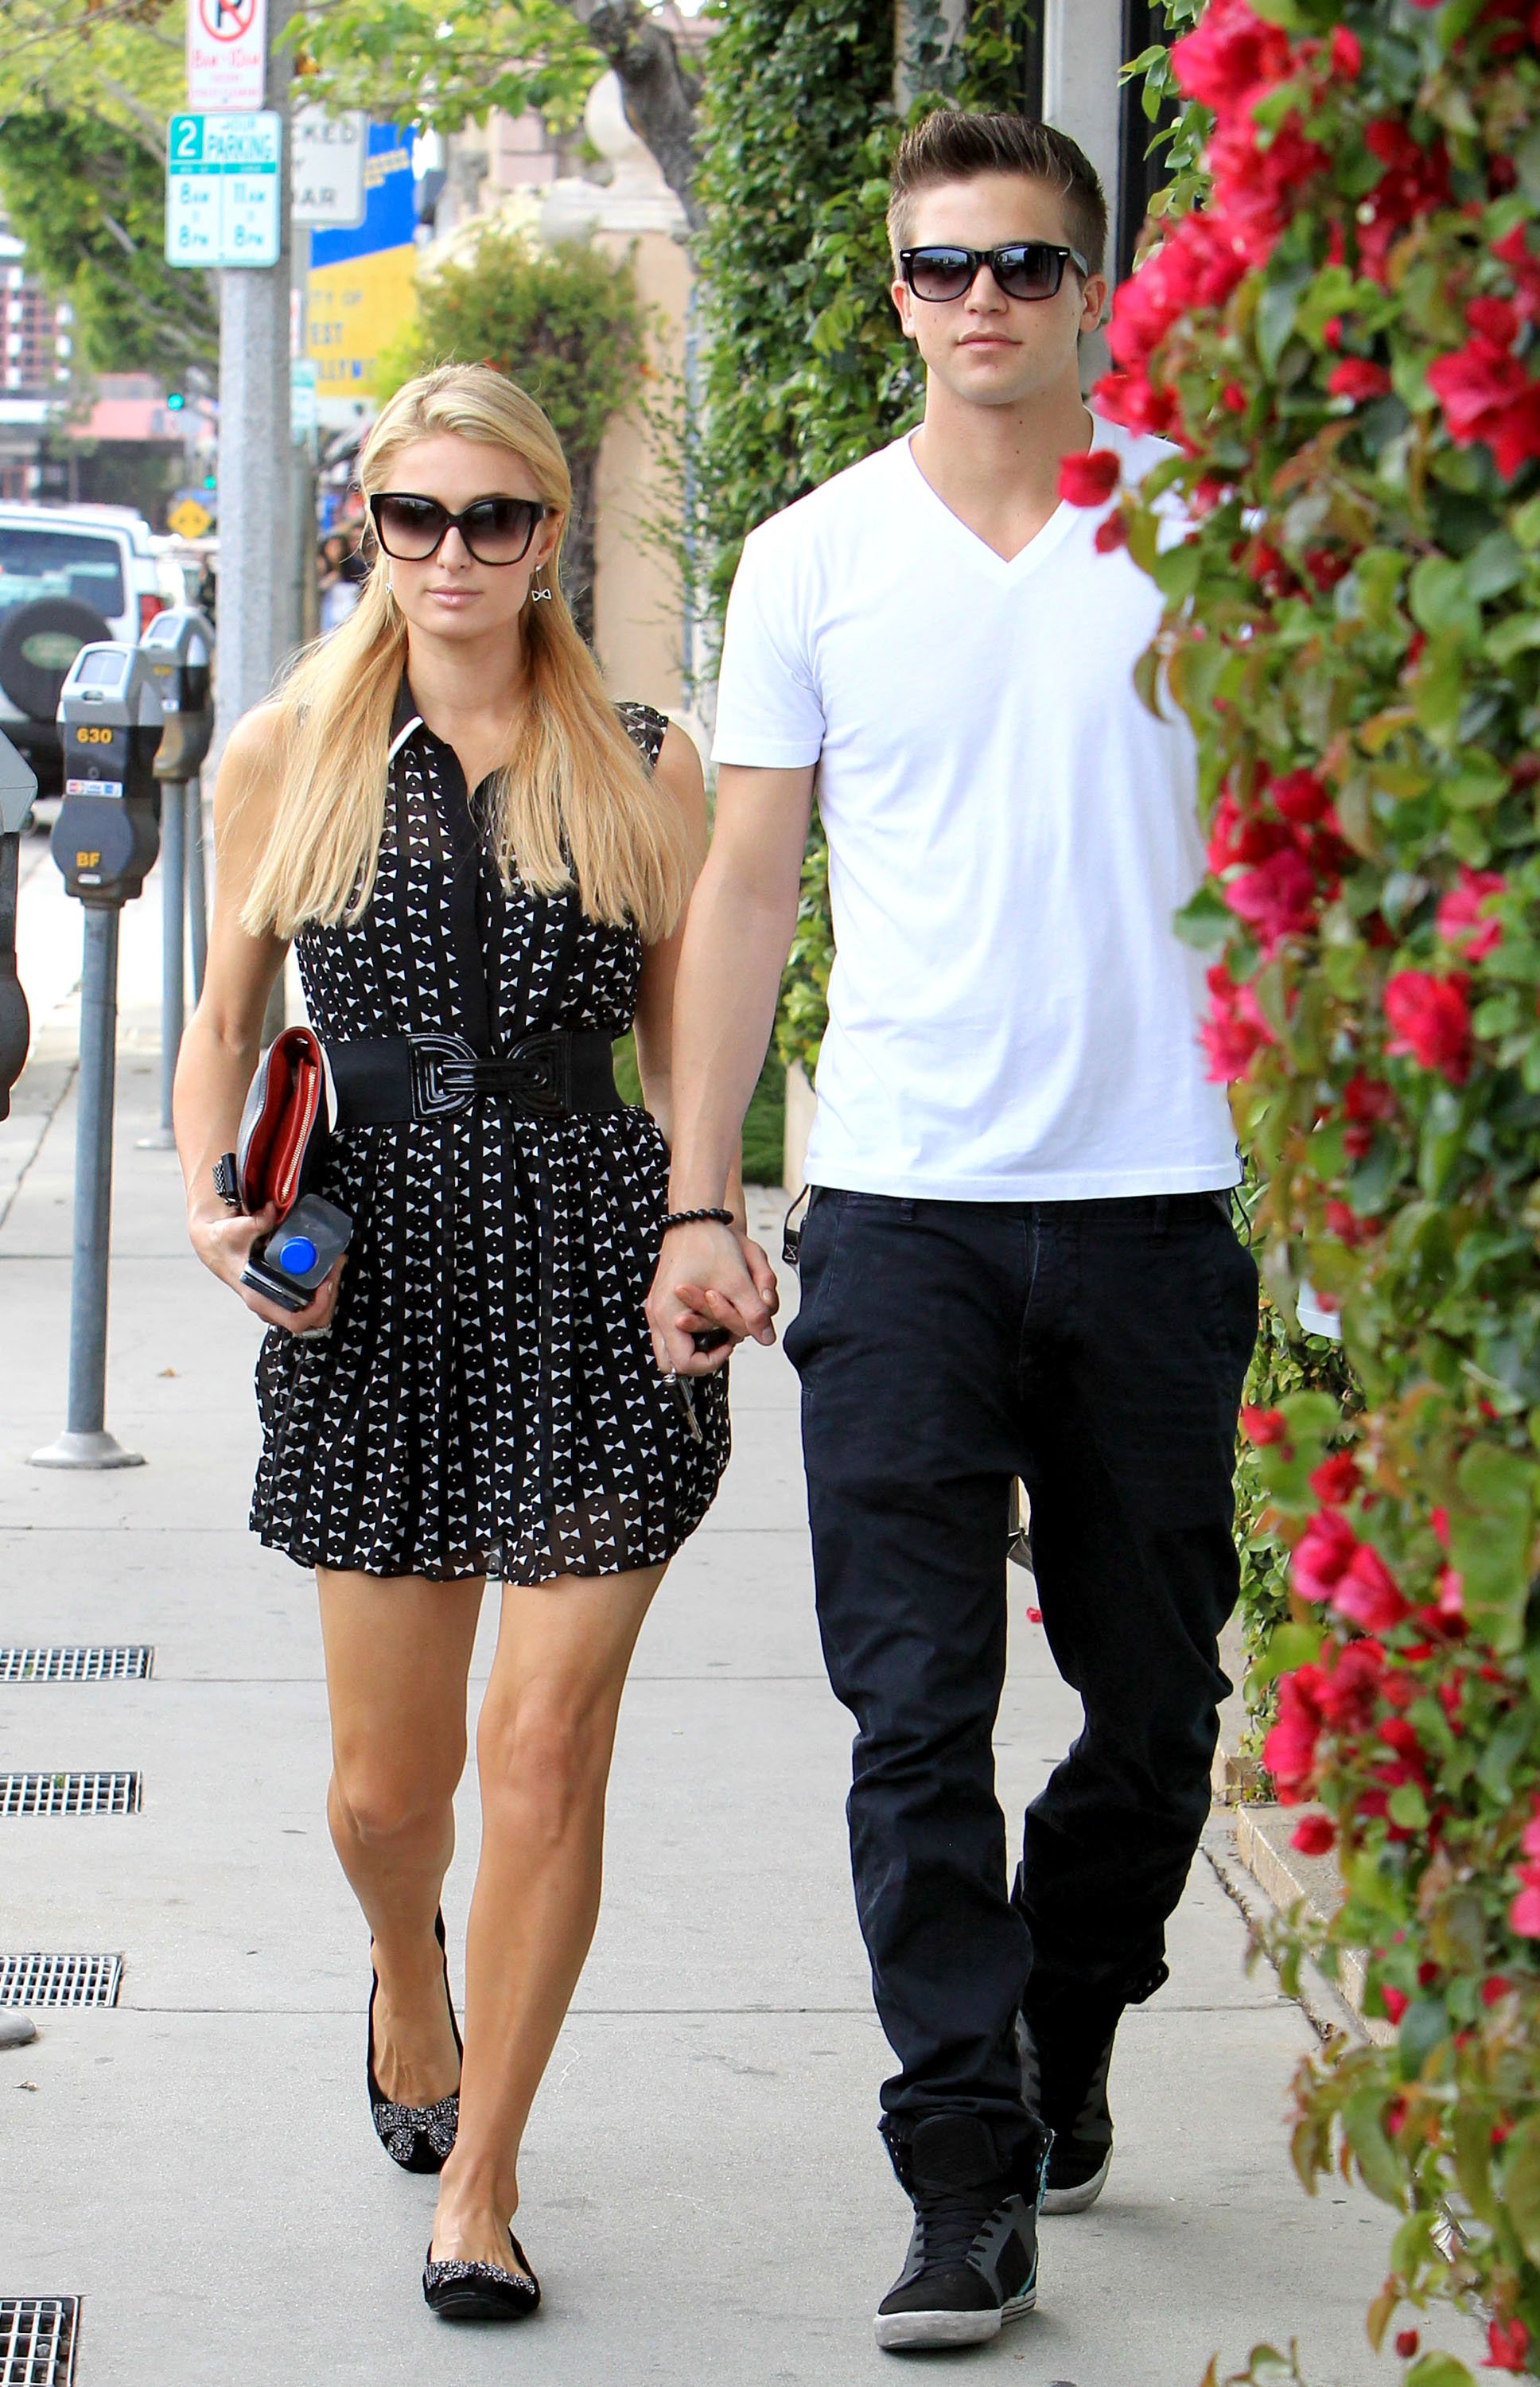 Get the Look: Paris Hilton's Playful Shopping Style